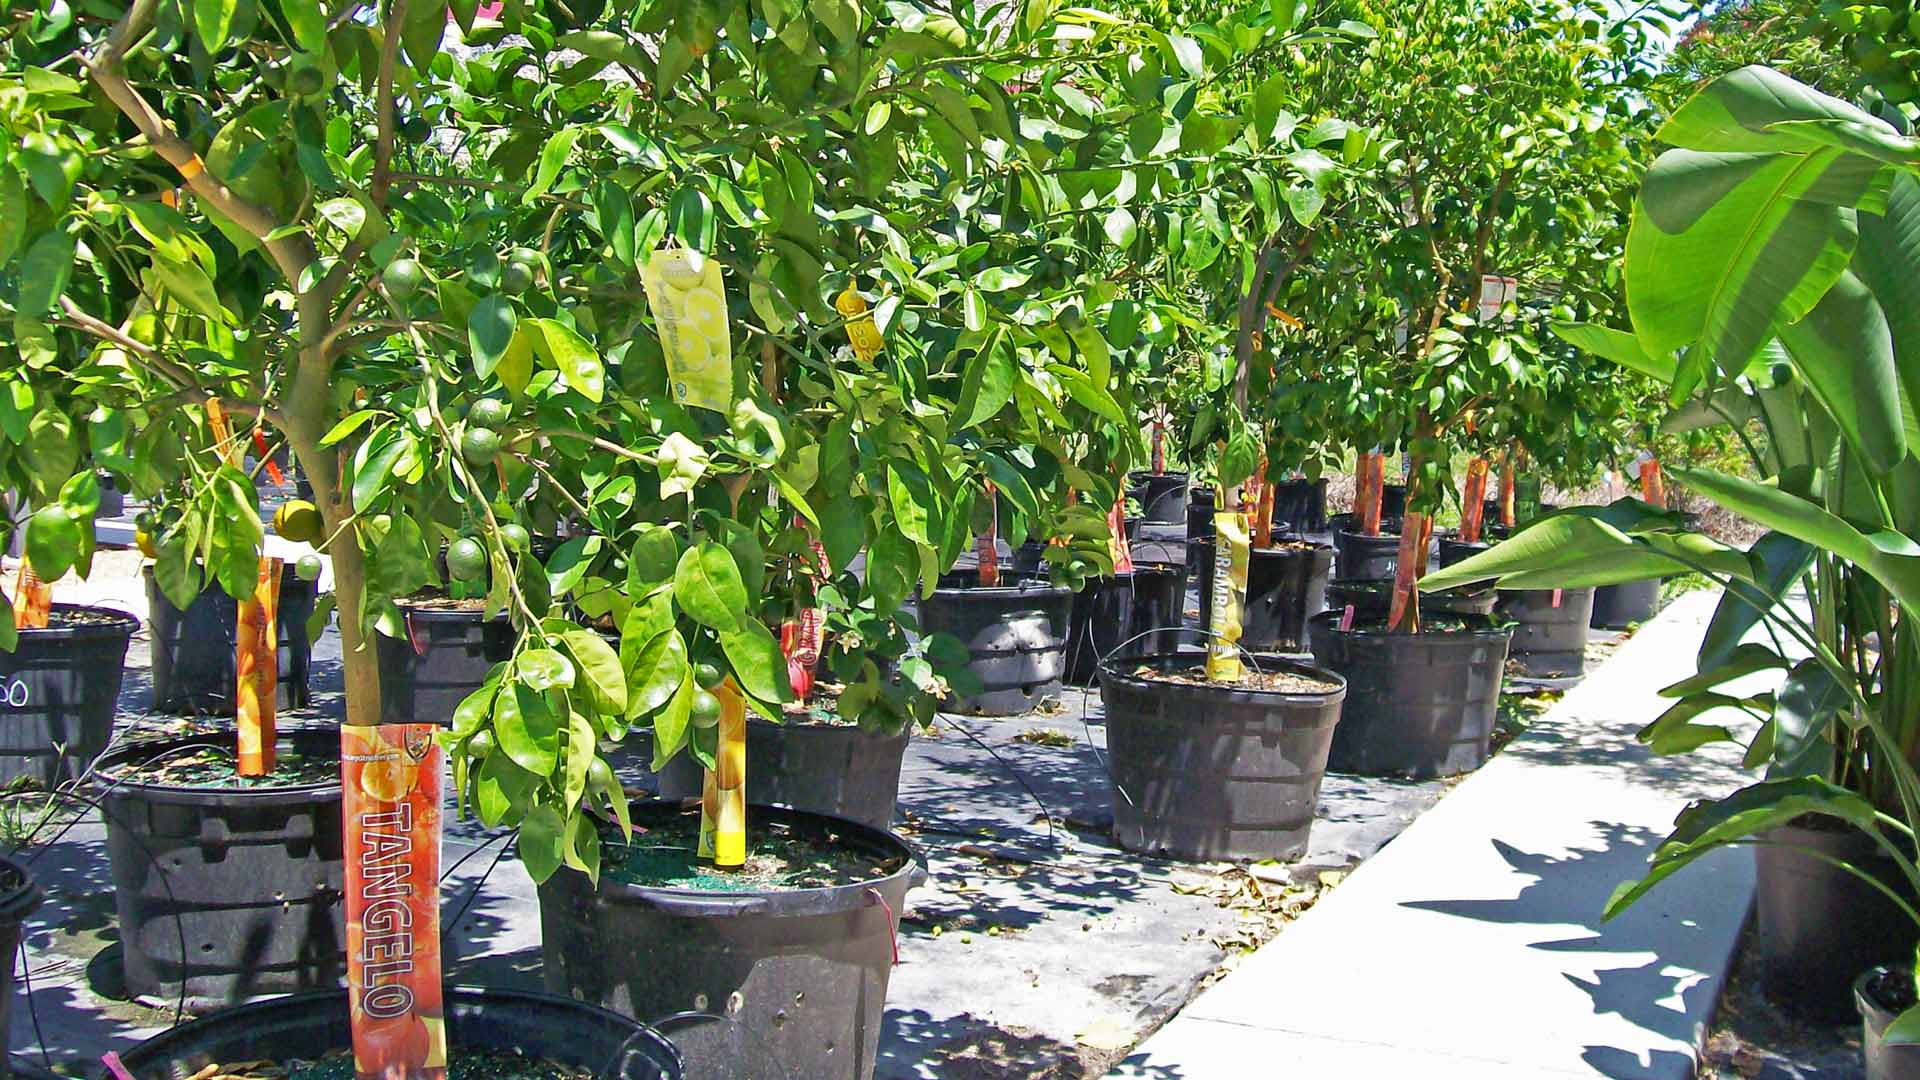 Fruit Trees For Sale at Sunman's Nursery in Fort Myers, FL